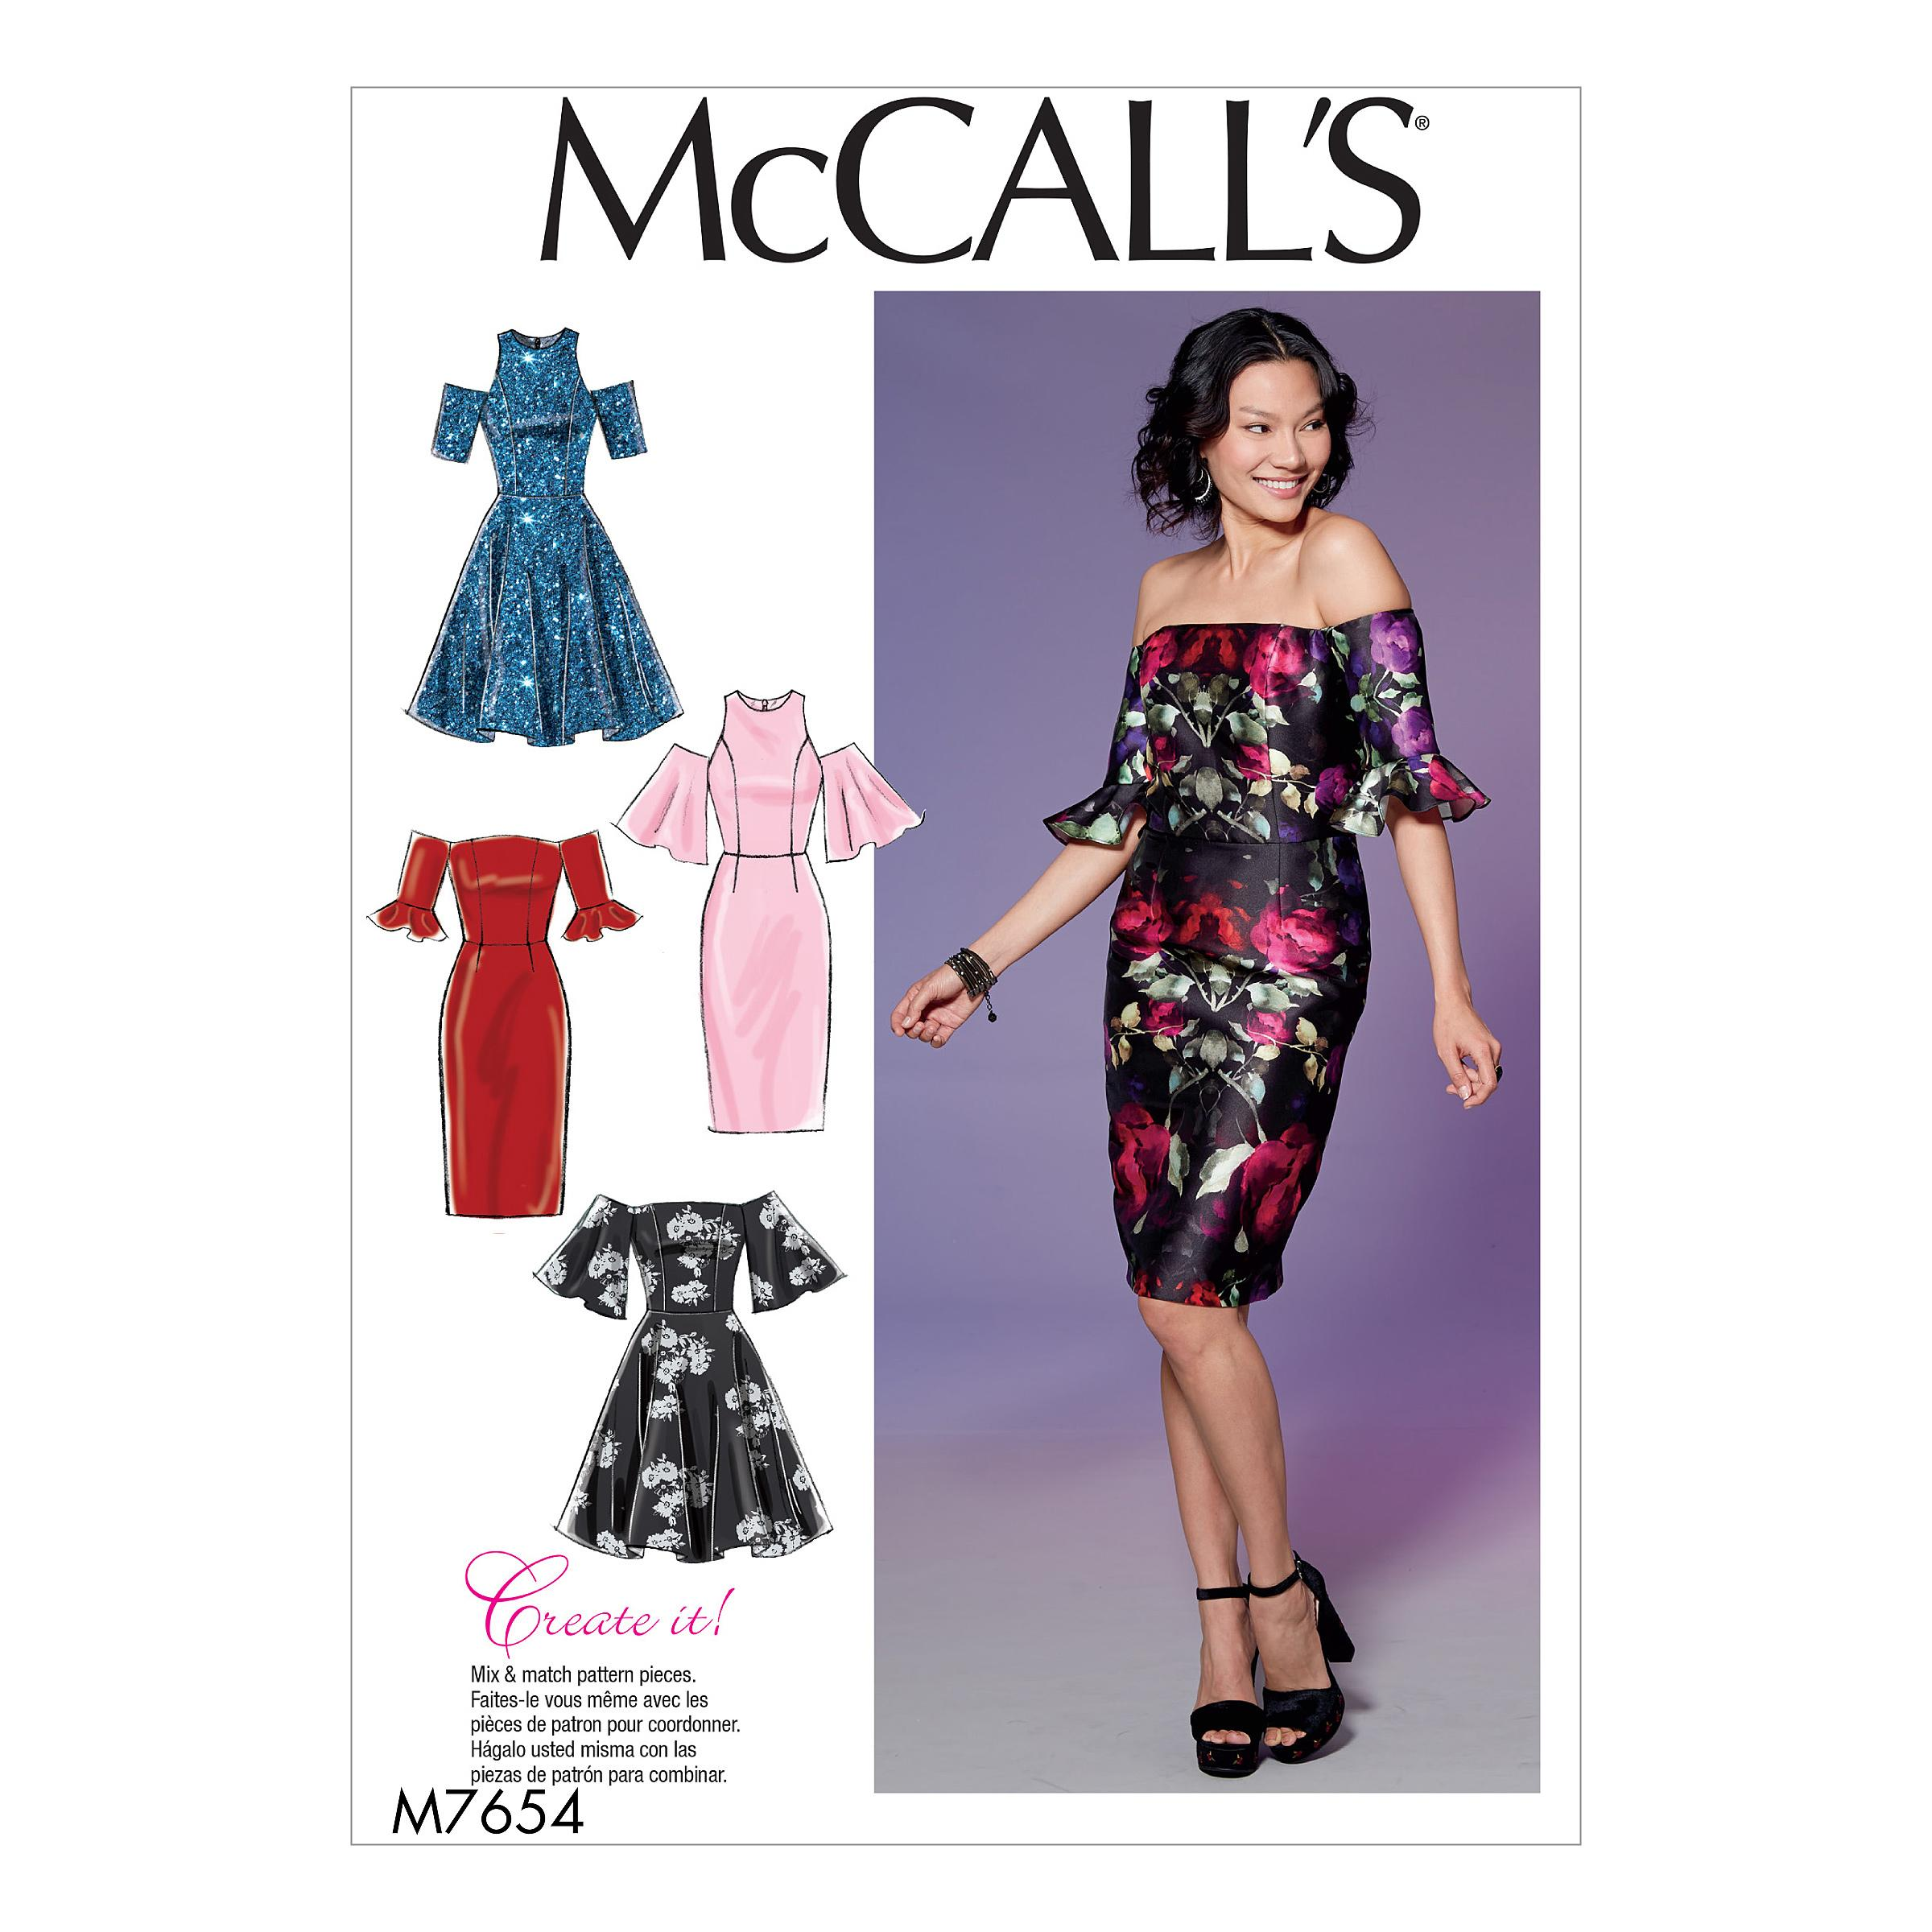 McCalls M7654 Misses Dresses, Misses Prom, Evening & Bridal